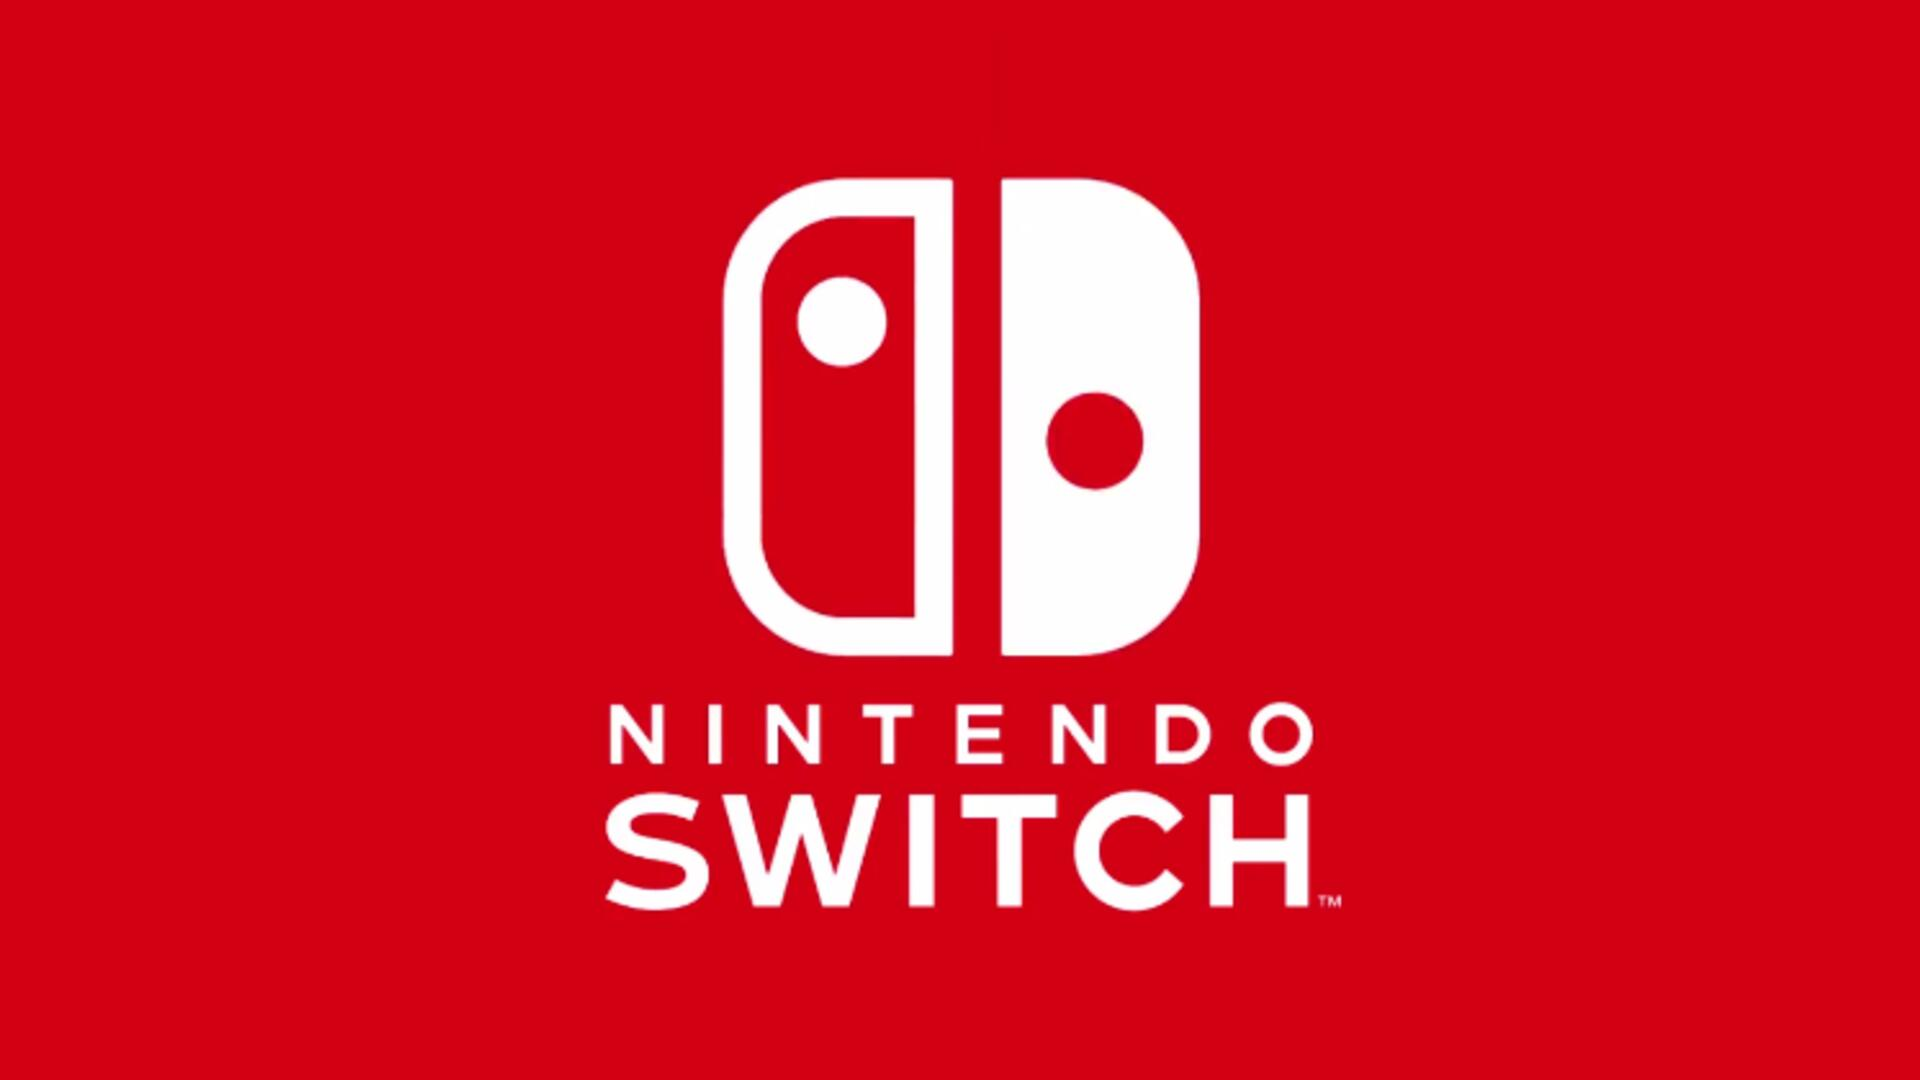 Nintendo's Switch Presentation, January 12: How to Watch It, and Where